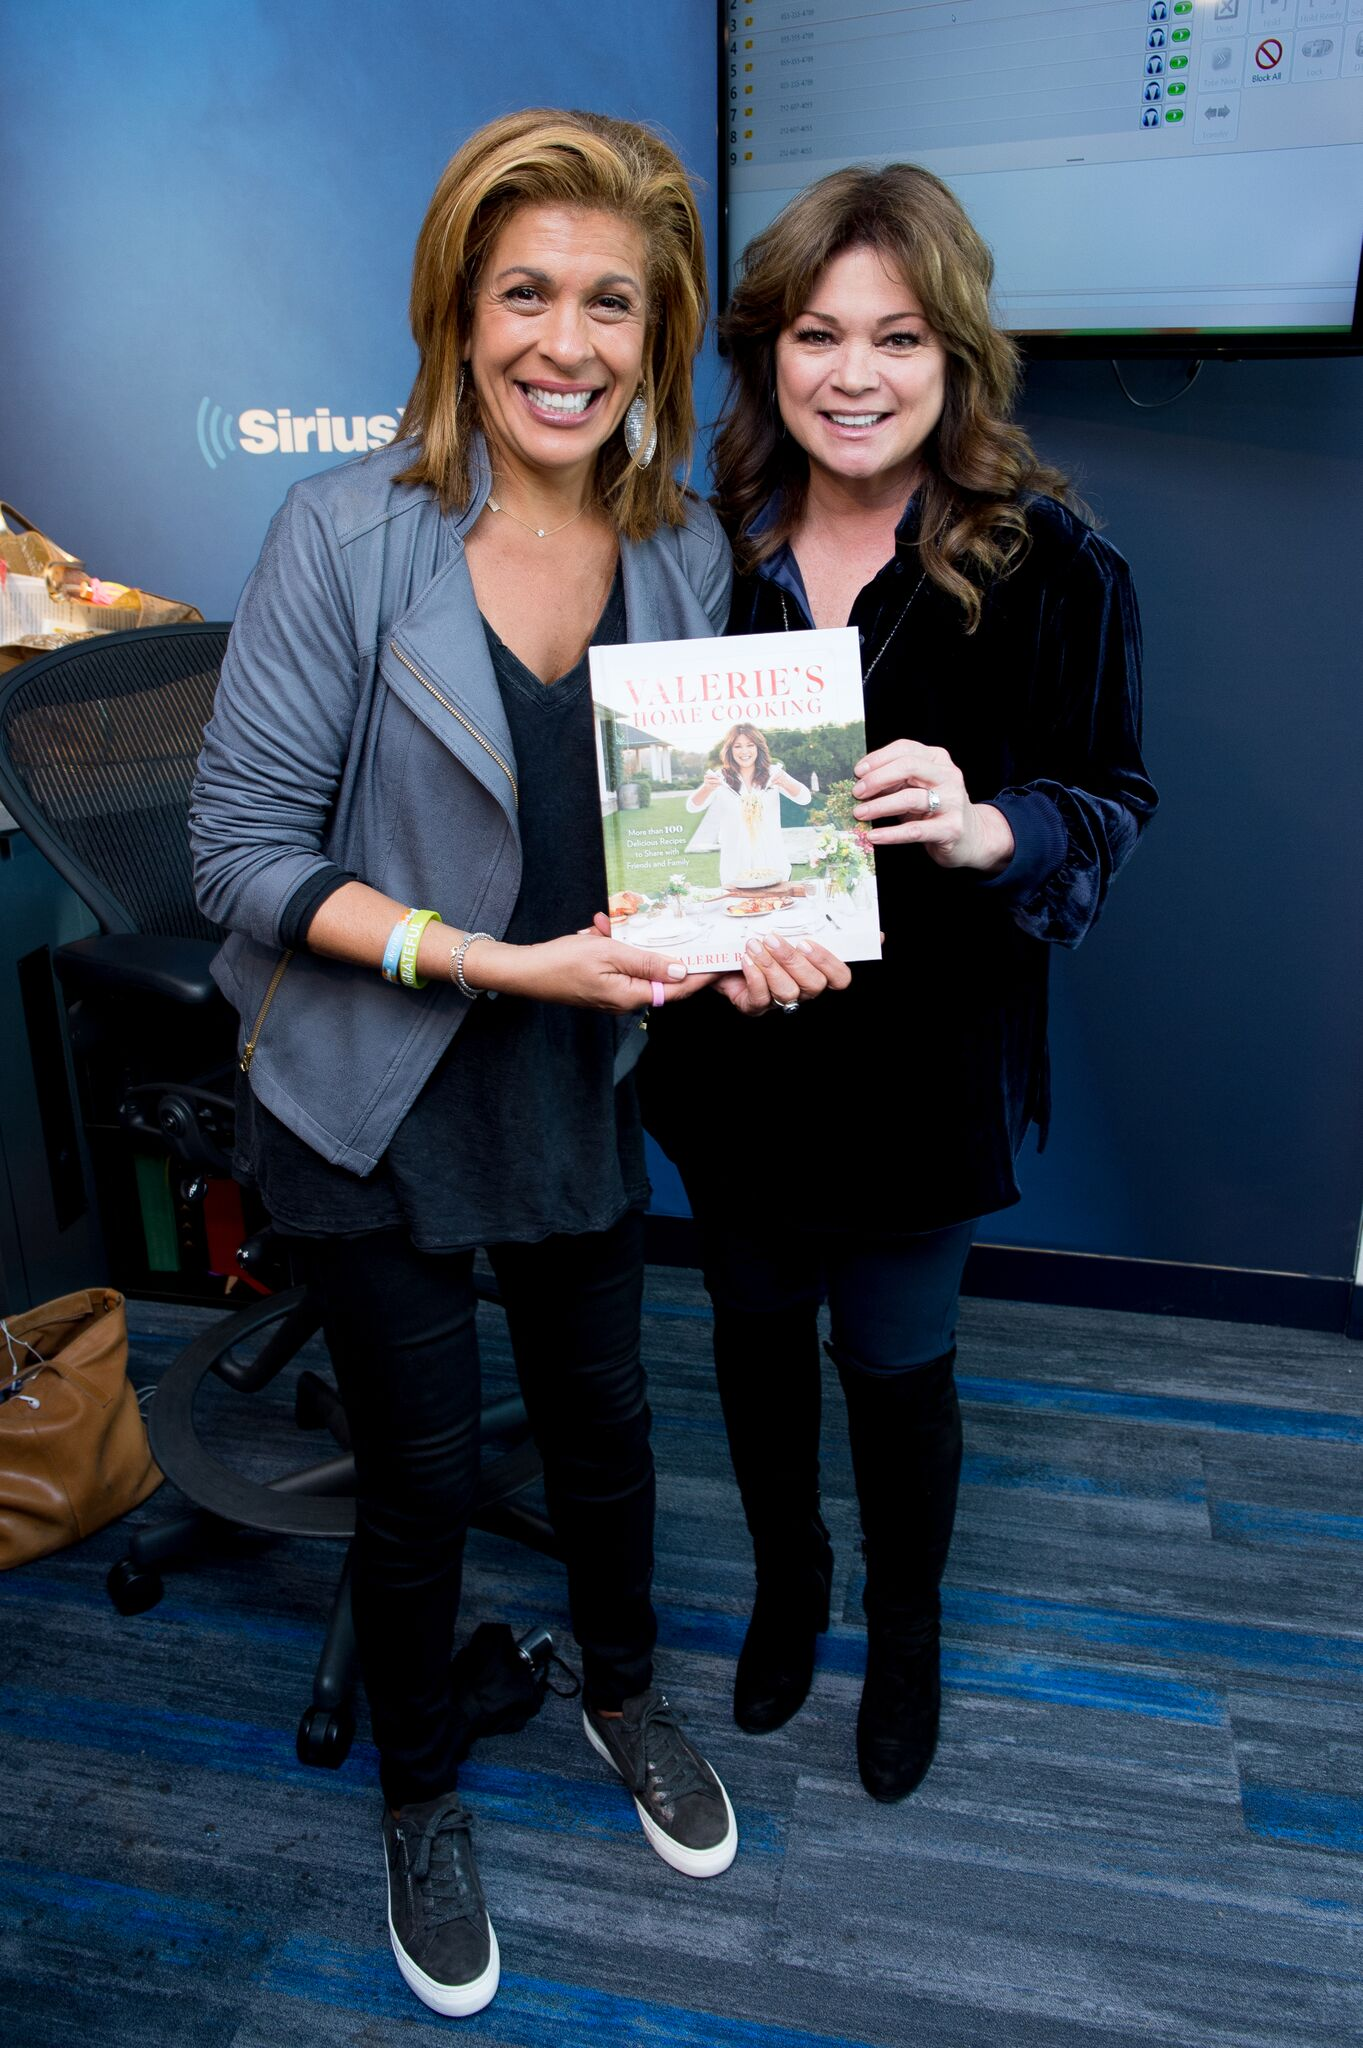 Hoda Kotb with Valerie Bertinelli as she visits Sirius XM | Getty Images / Global Images Ukraine